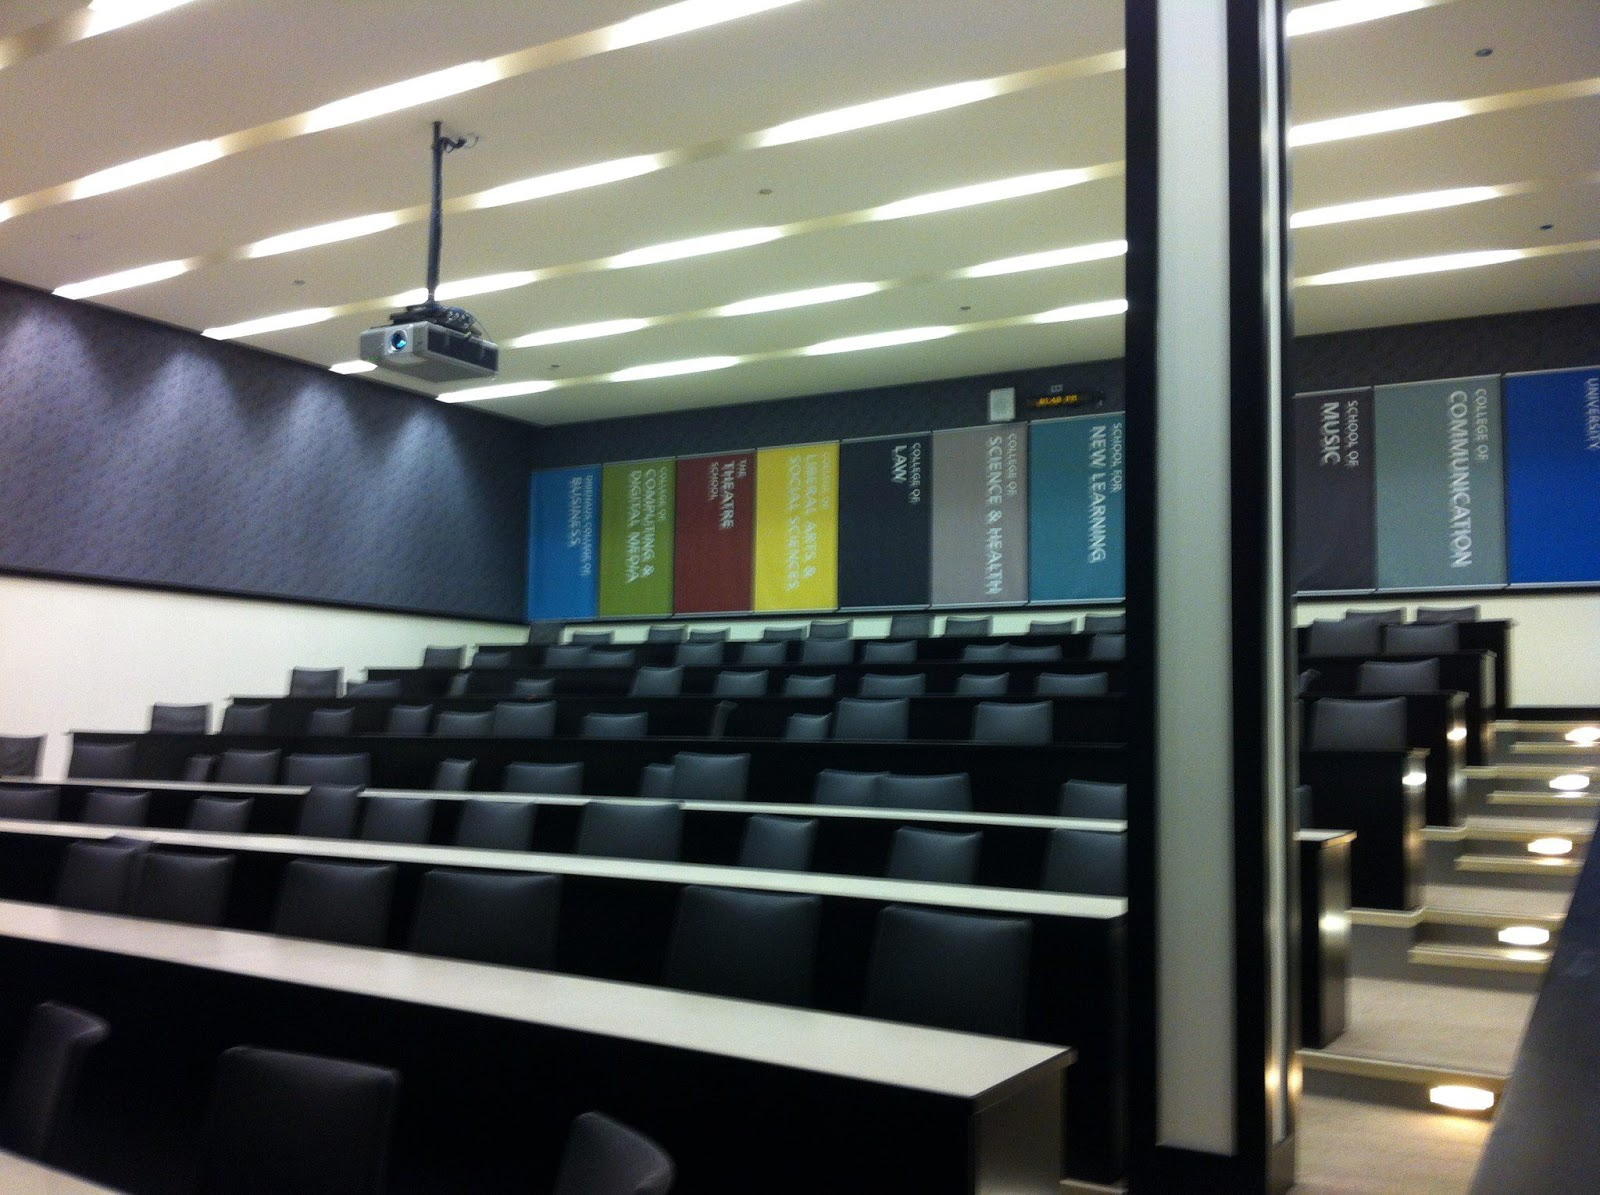 Color printing depaul - The Lincoln Park Campus Has A Large Welcome Center Which Houses The Undergraduate Admissions The Admissions Office In The Loop Is For Graduate Students